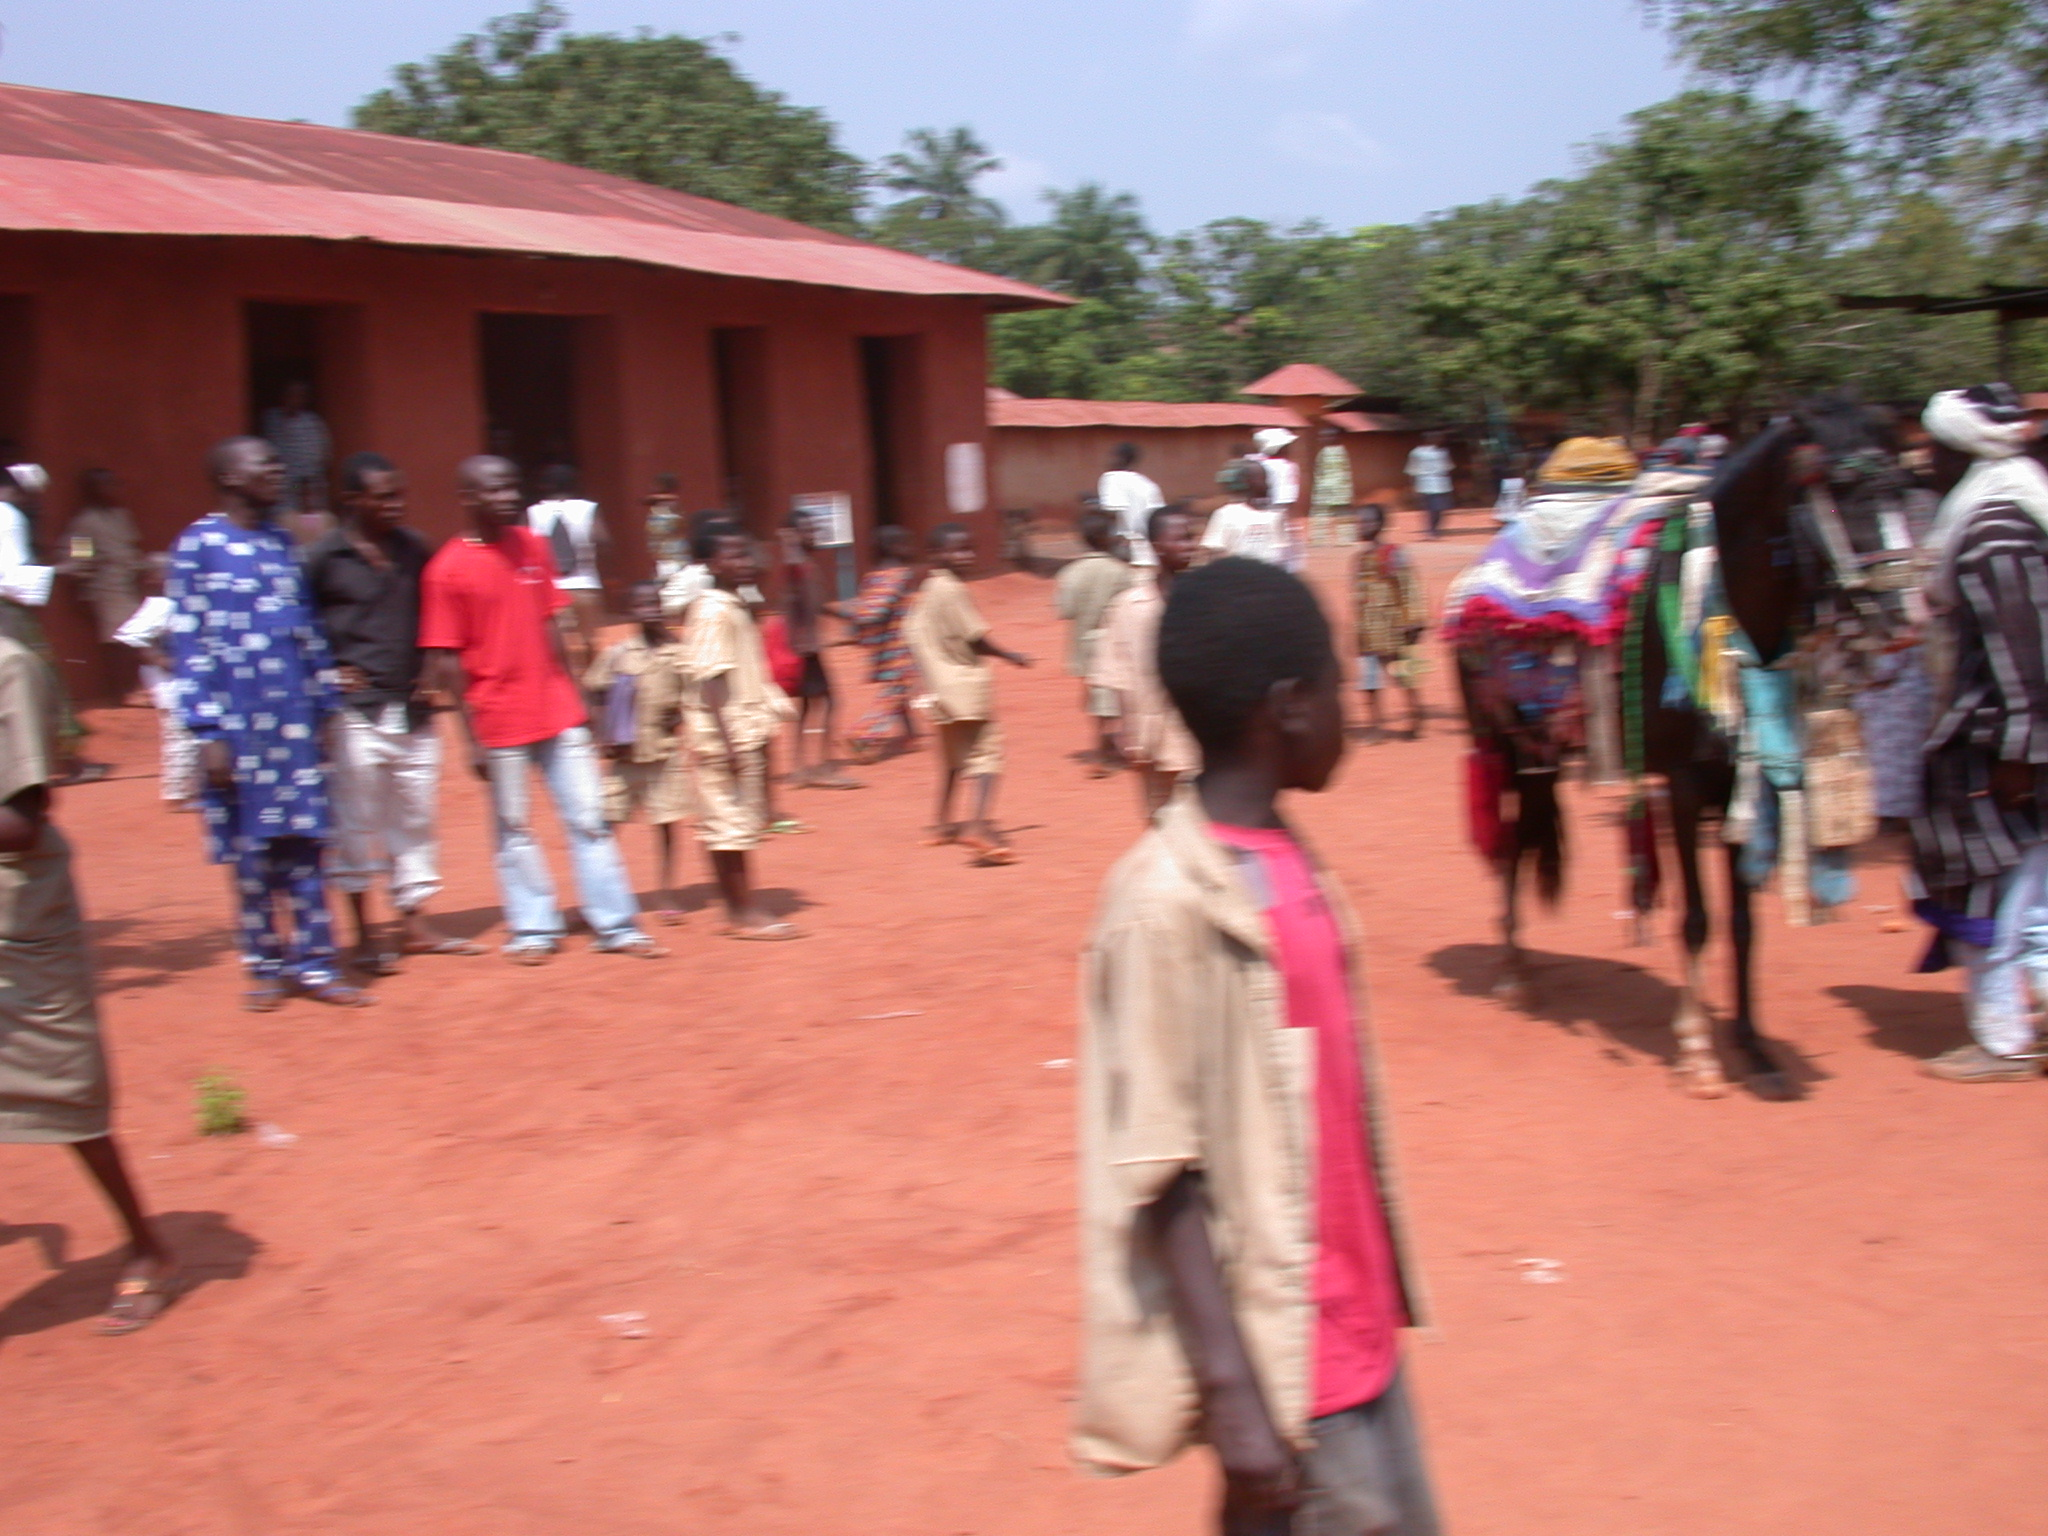 Blurry Fancy Dress Horse at Danxome Festival Celebrations at Palace Grounds, Abomey History Museum, Abomey, Benin